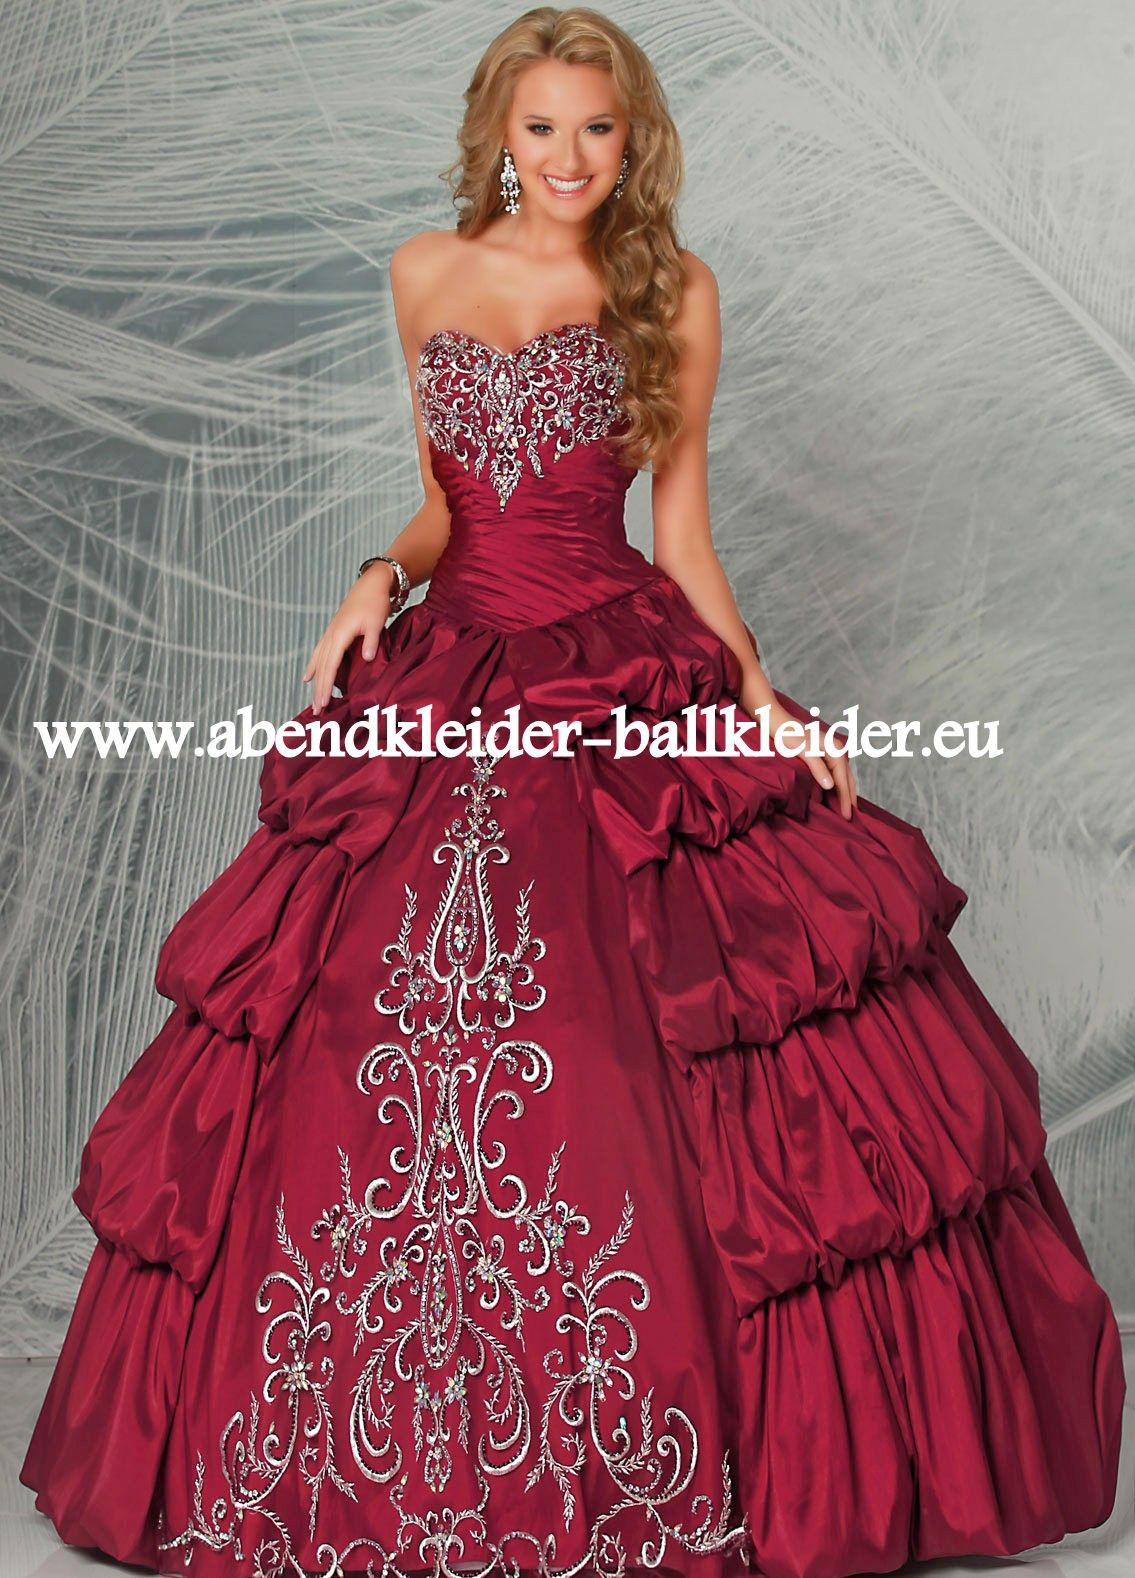 cinderella abend ballkleid brautkleid online in weinrot dunkelrot kleider und frisuren. Black Bedroom Furniture Sets. Home Design Ideas